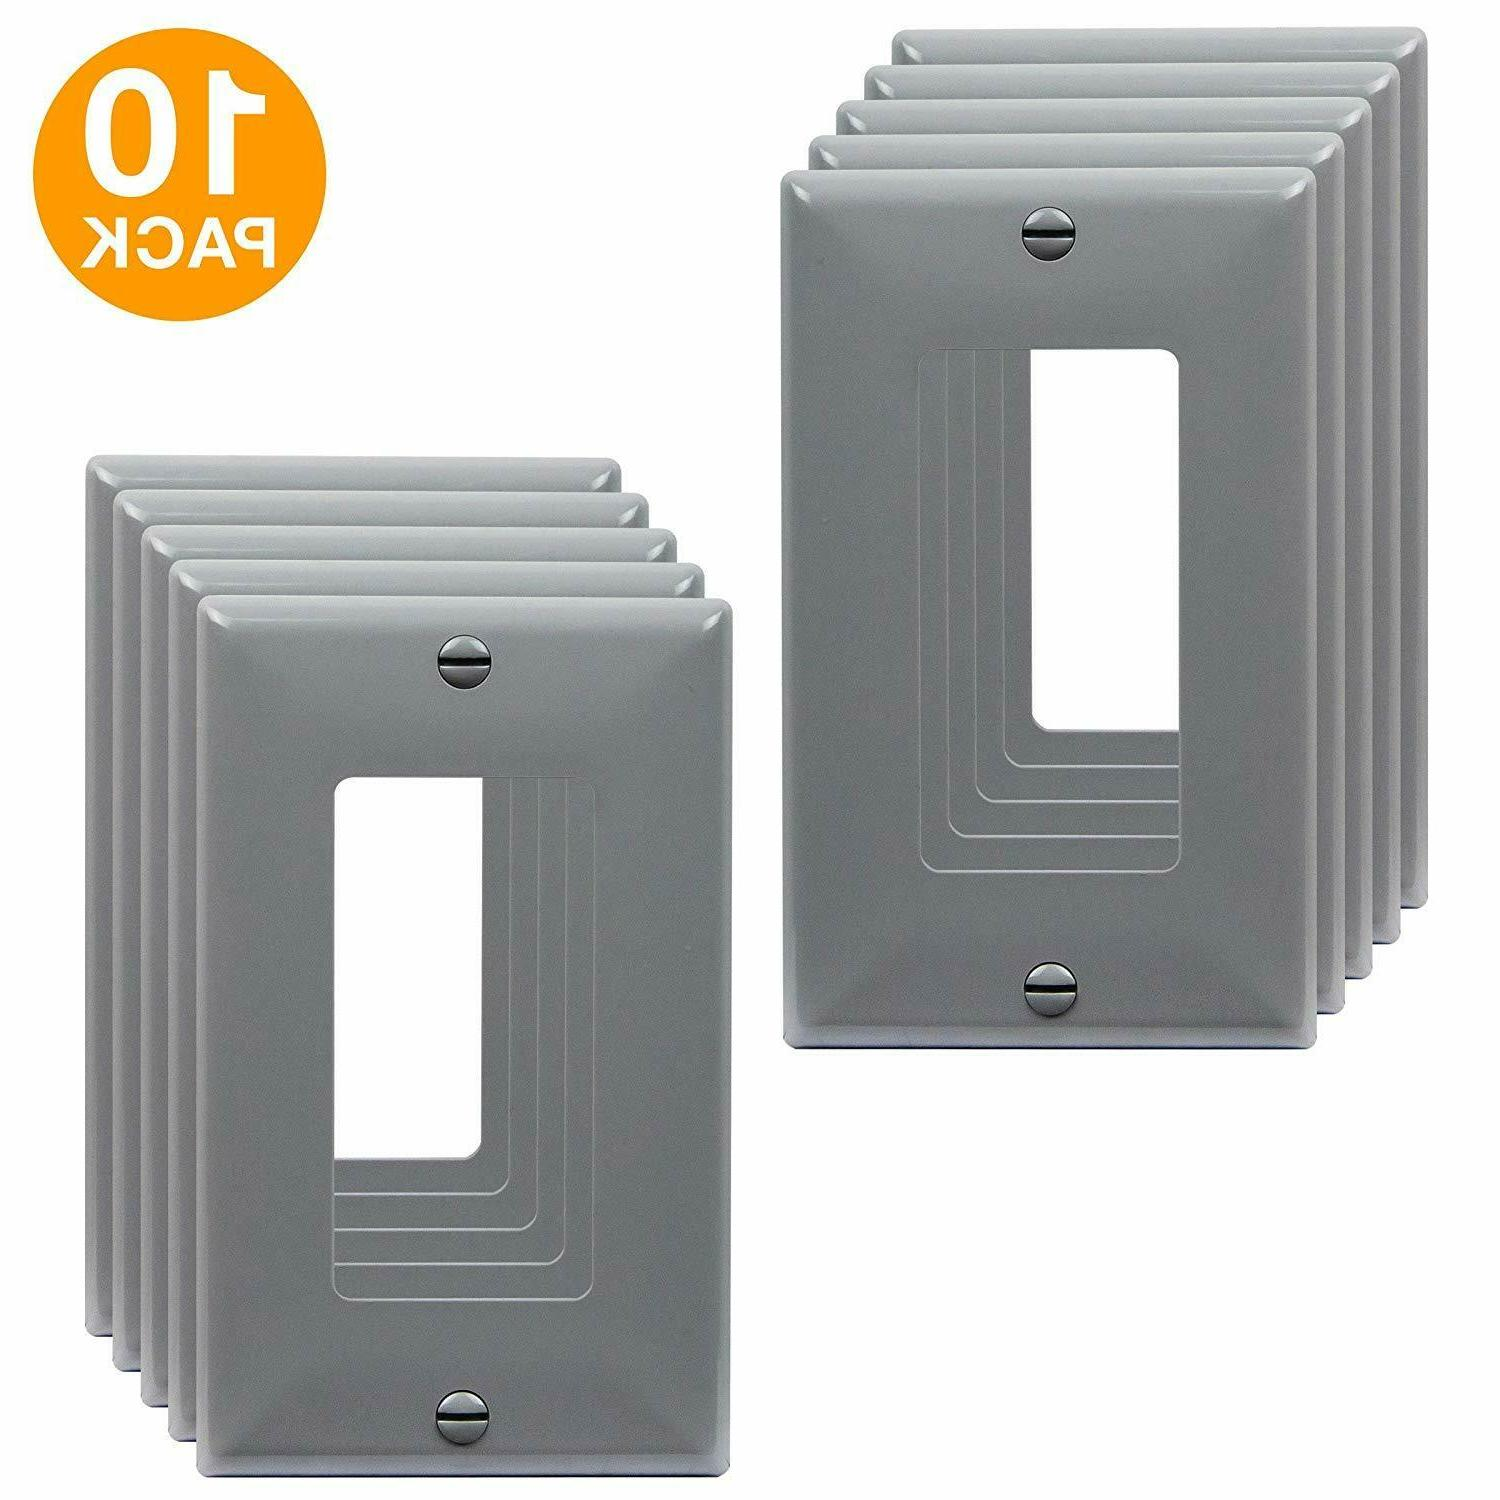 decorator light switch receptacle outlet wall plate